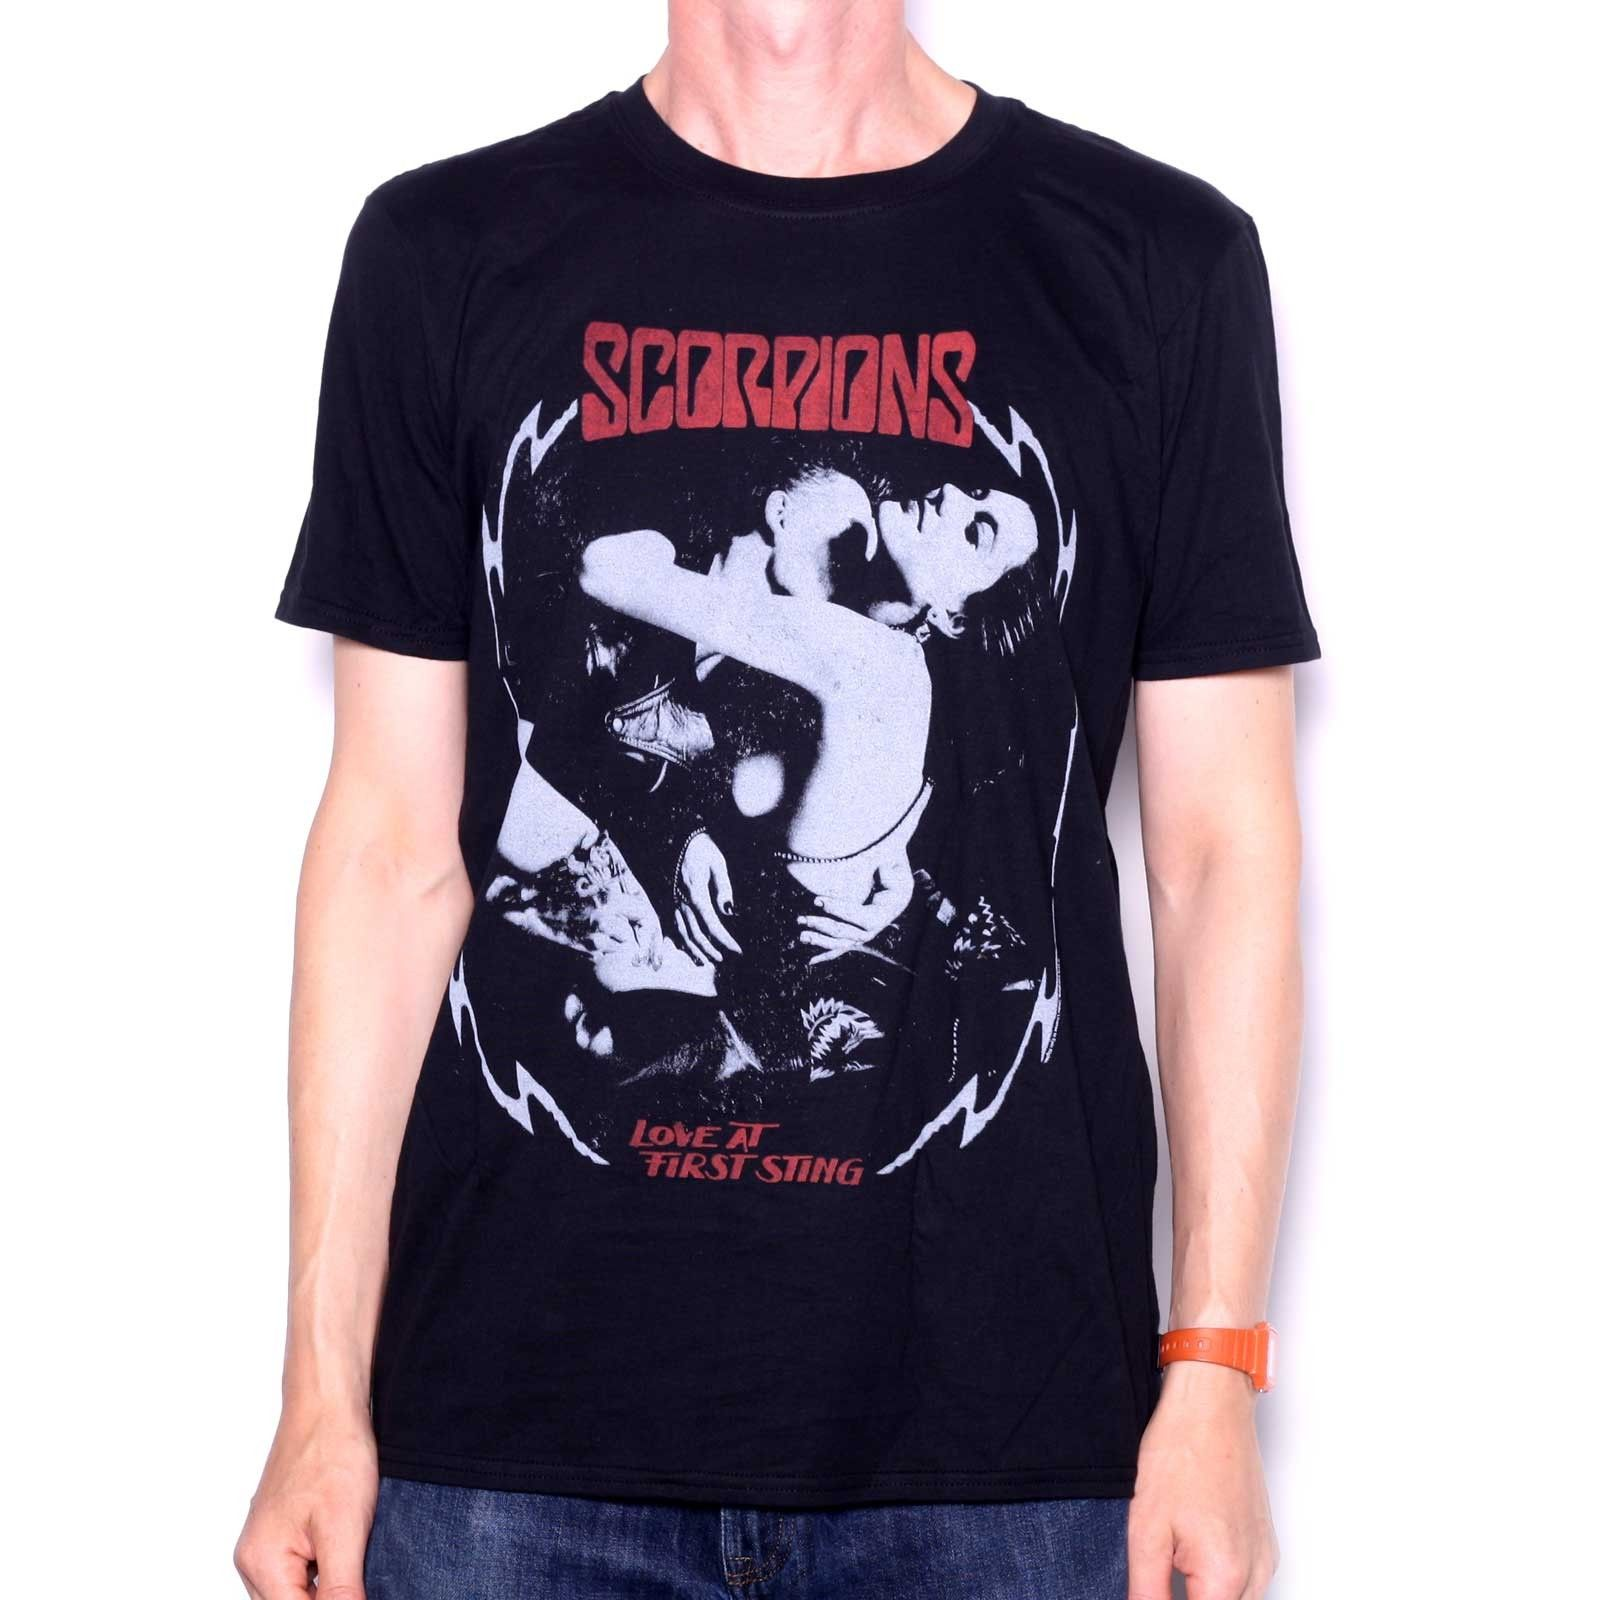 NEW /& OFFICIAL! Scorpions /'Love At First Sting/' T-Shirt